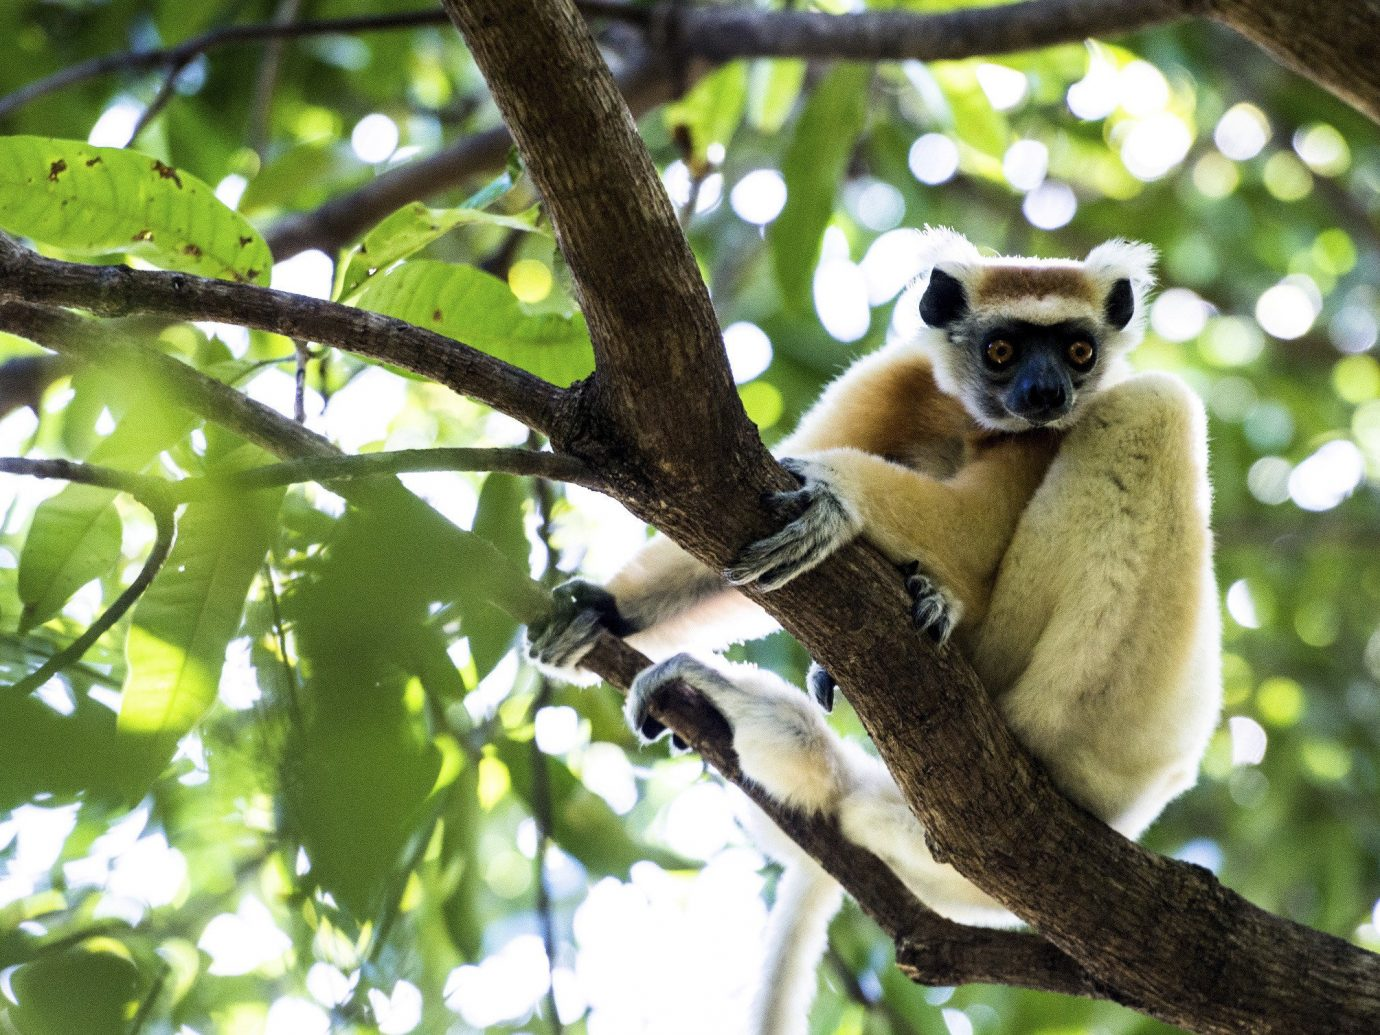 Outdoors + Adventure Travel Tips tree outdoor animal mammal branch primate sitting fauna lemur leaf indri Wildlife perched Jungle organism terrestrial animal plant old world monkey snout procyonidae day